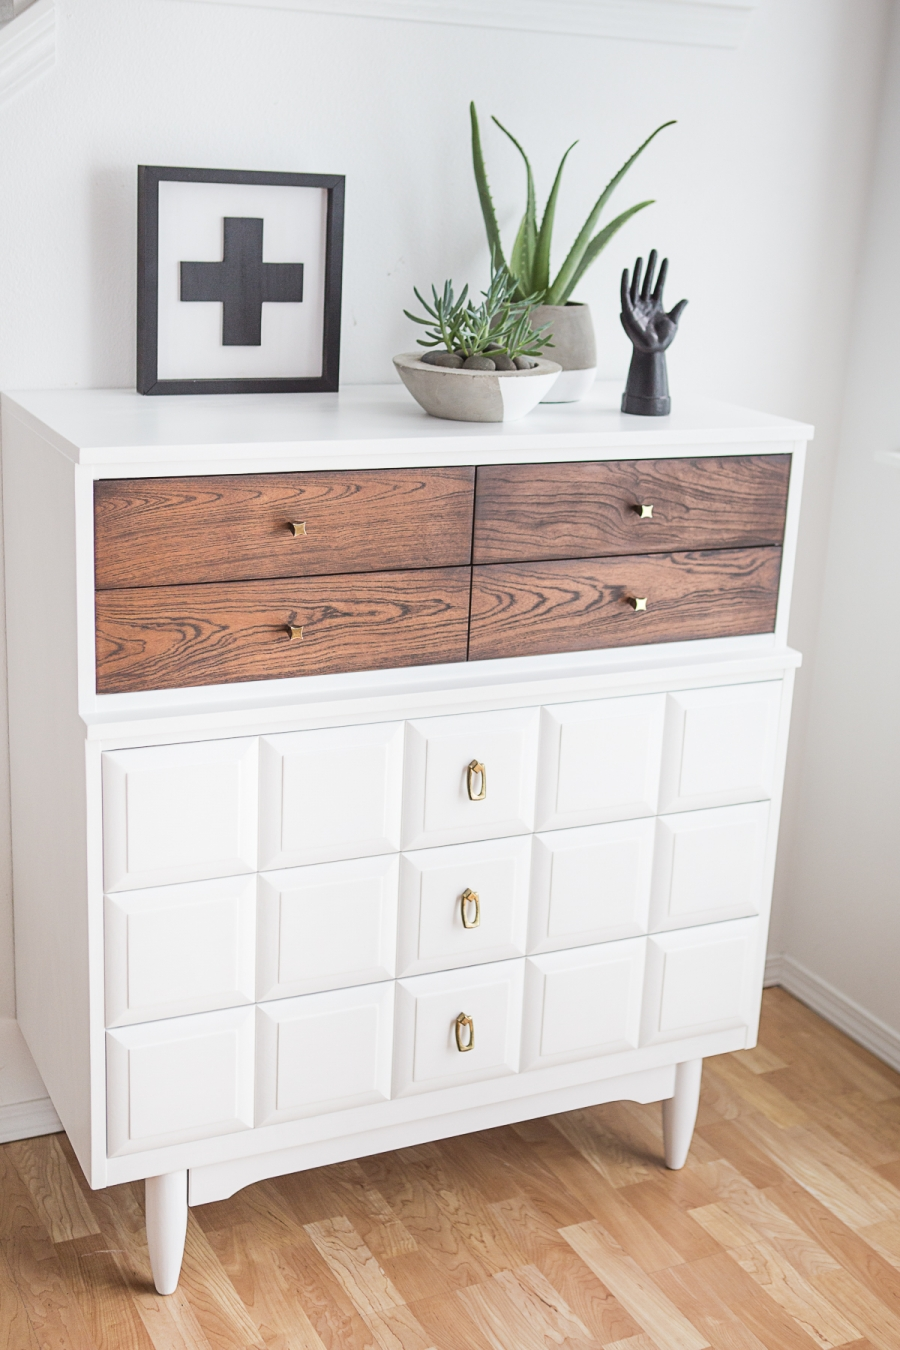 La Period Furniture Co. Tallboy Dresser | General Finishes 2017 ...